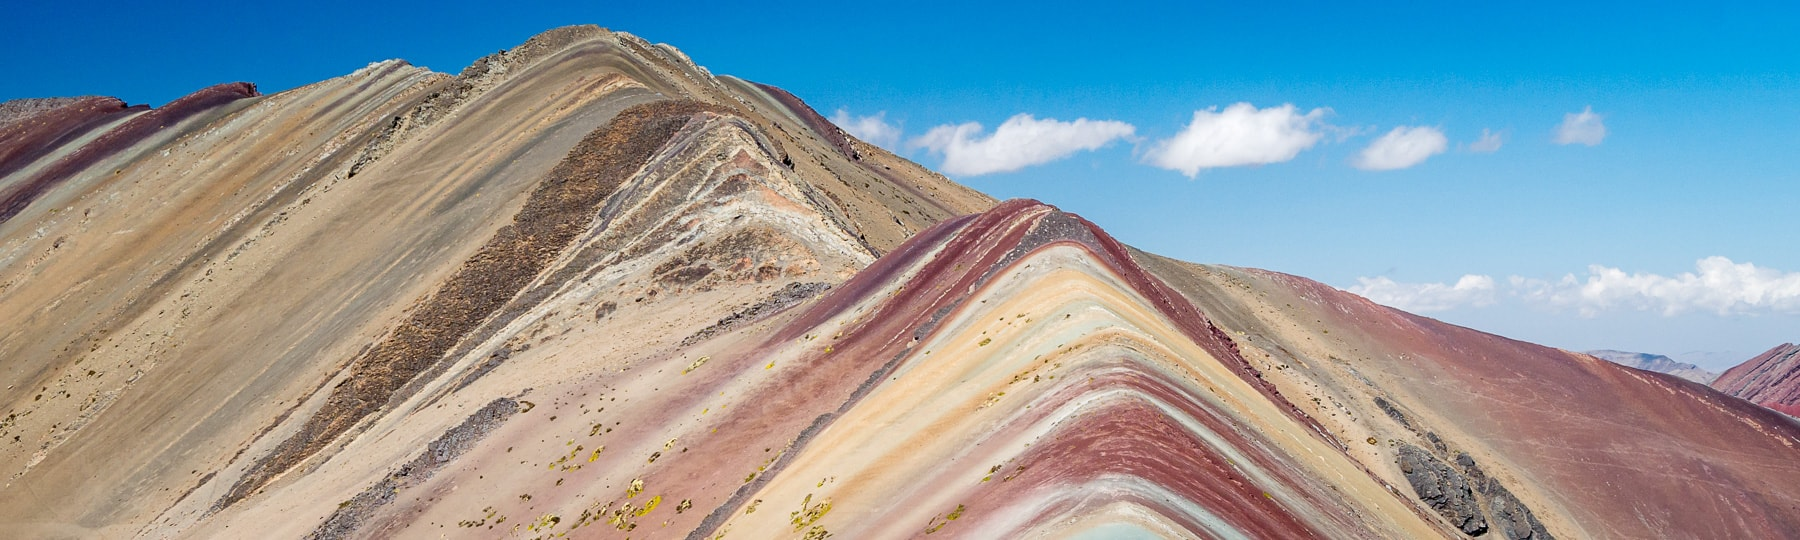 Rainbow Mountain Peru Cusco